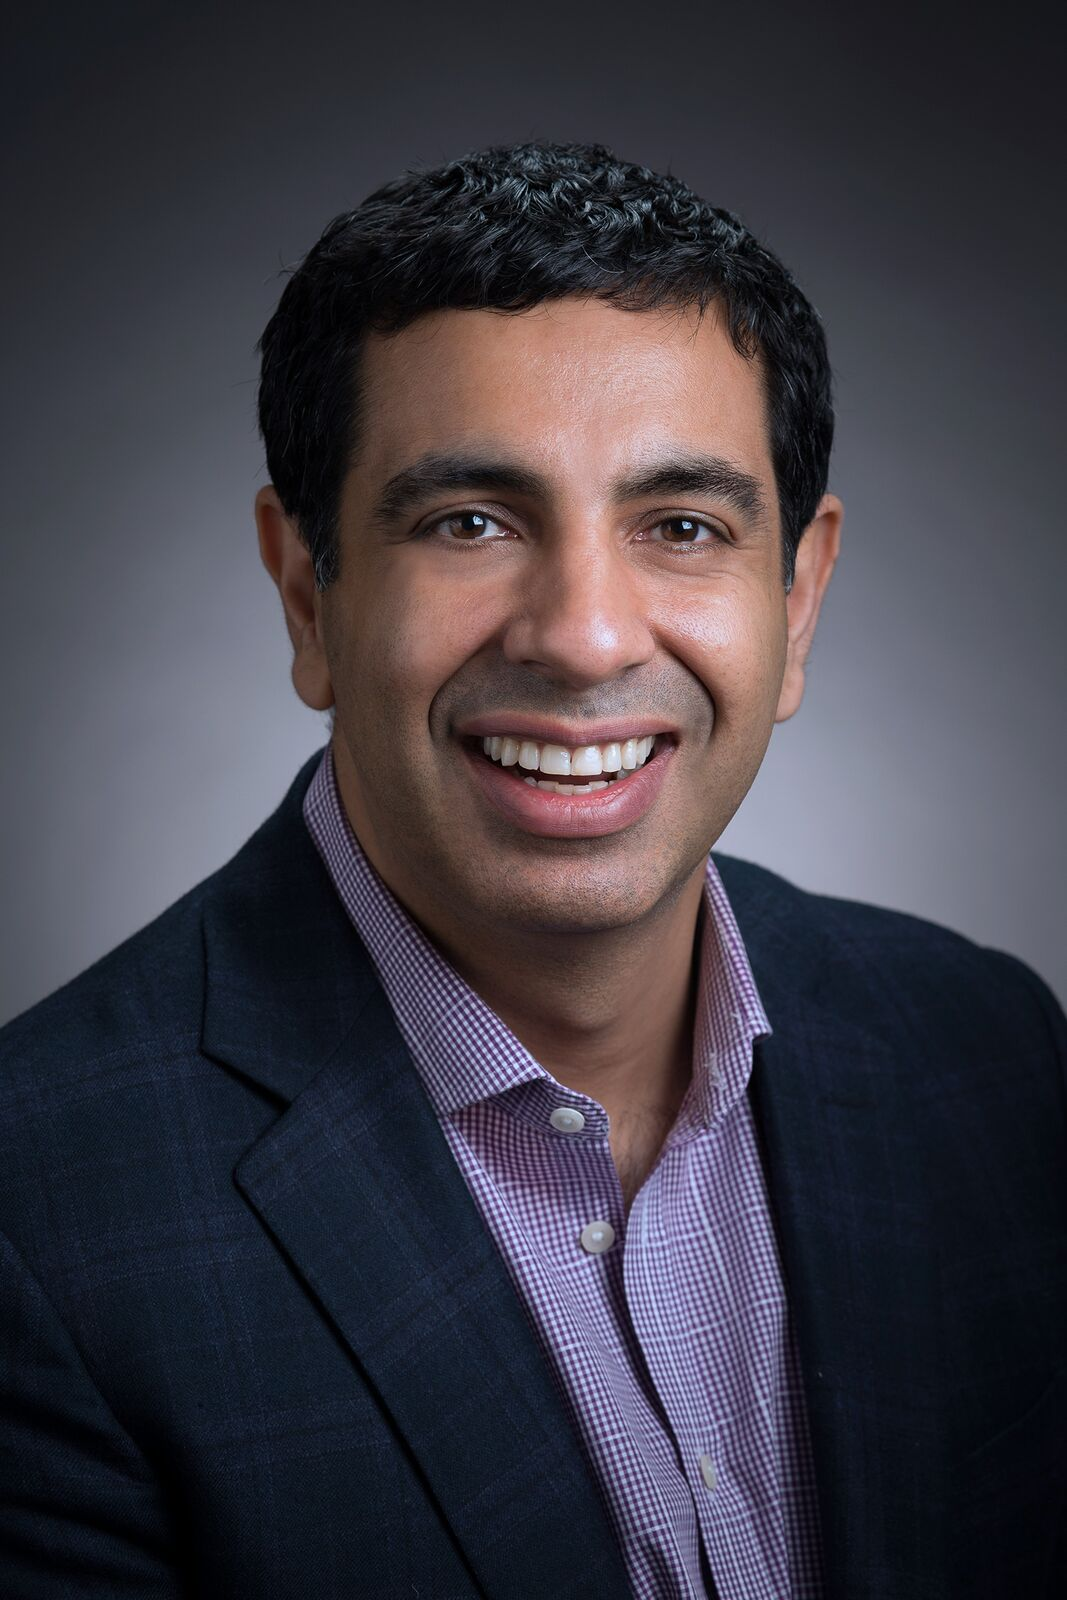 Anesthesia Camp Grand Cayman 2022 Faculty - Sachin Kheterpal, MD MBA